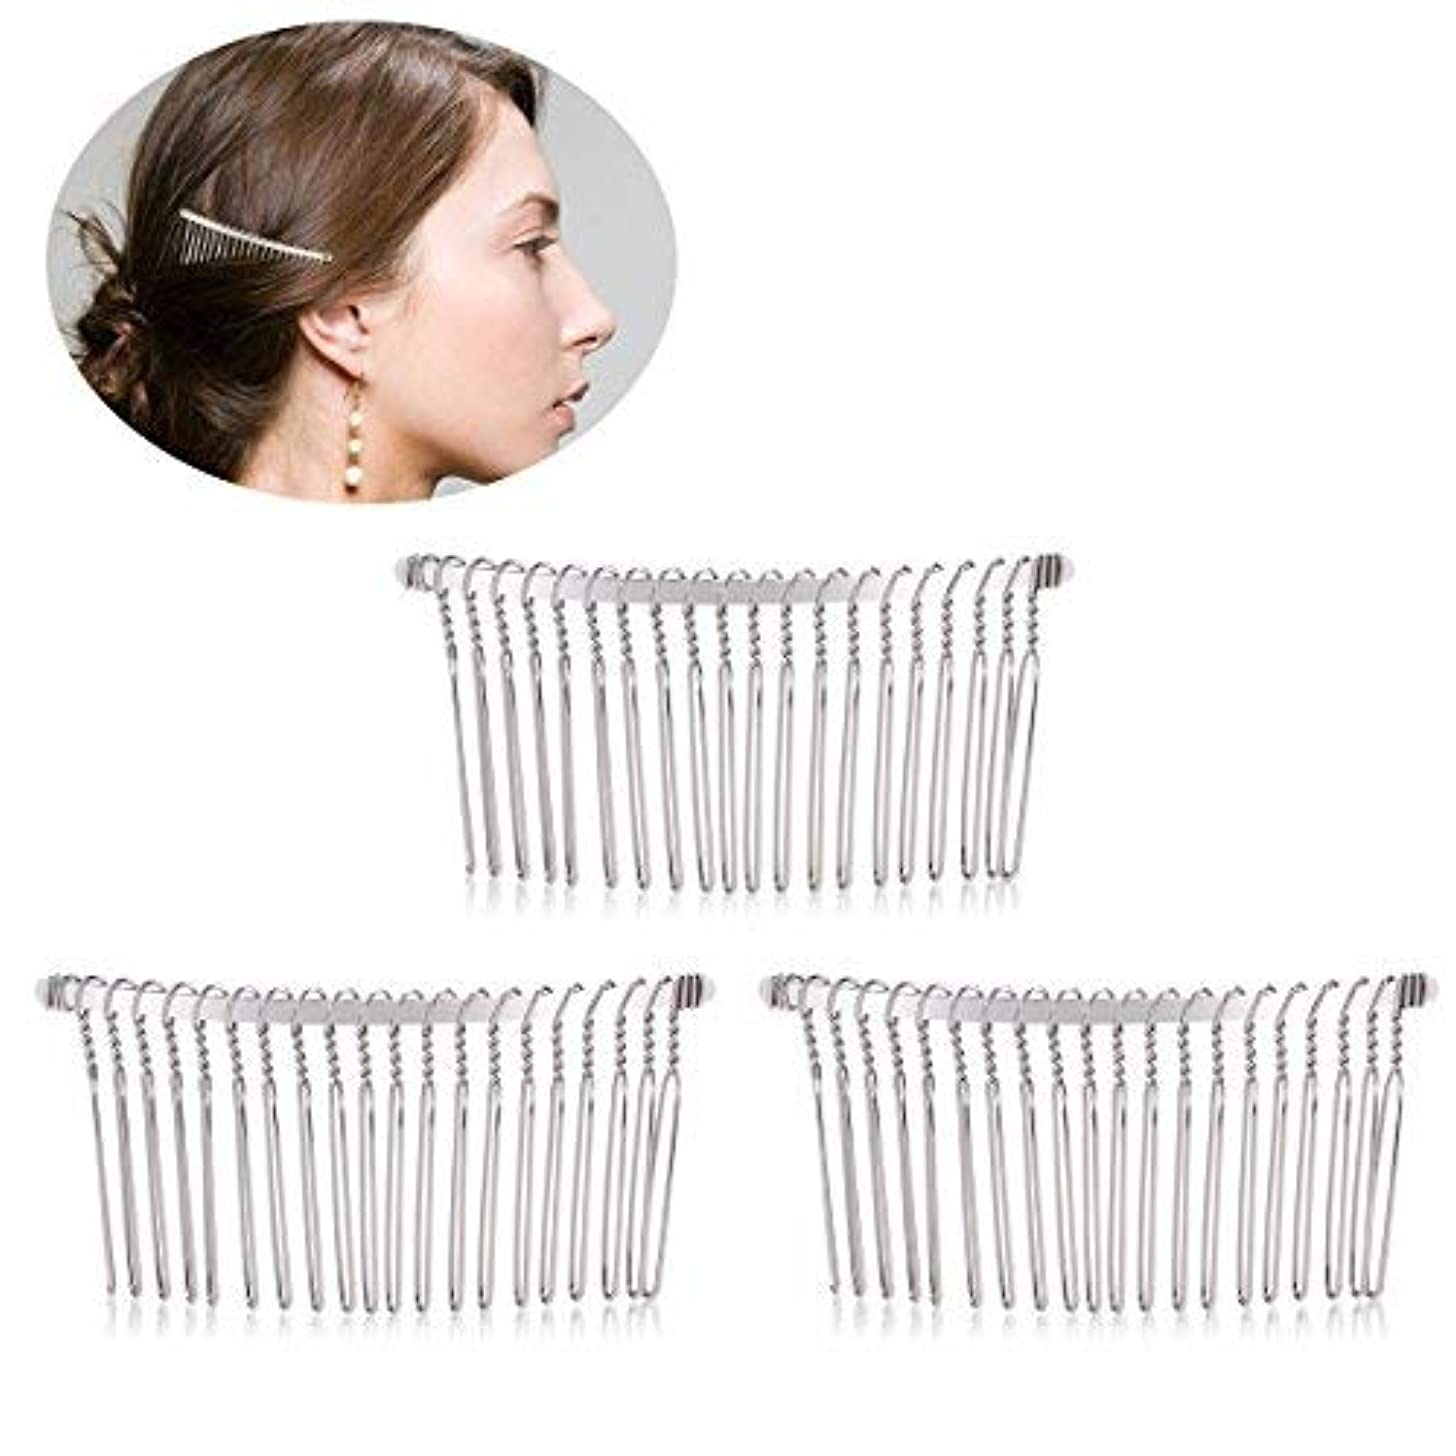 キロメートルあらゆる種類の静けさPixnor 3pcs 7.8cm 20 Teeth Fancy DIY Metal Wire Hair Clip Combs Bridal Wedding Veil Combs (Silver) [並行輸入品]